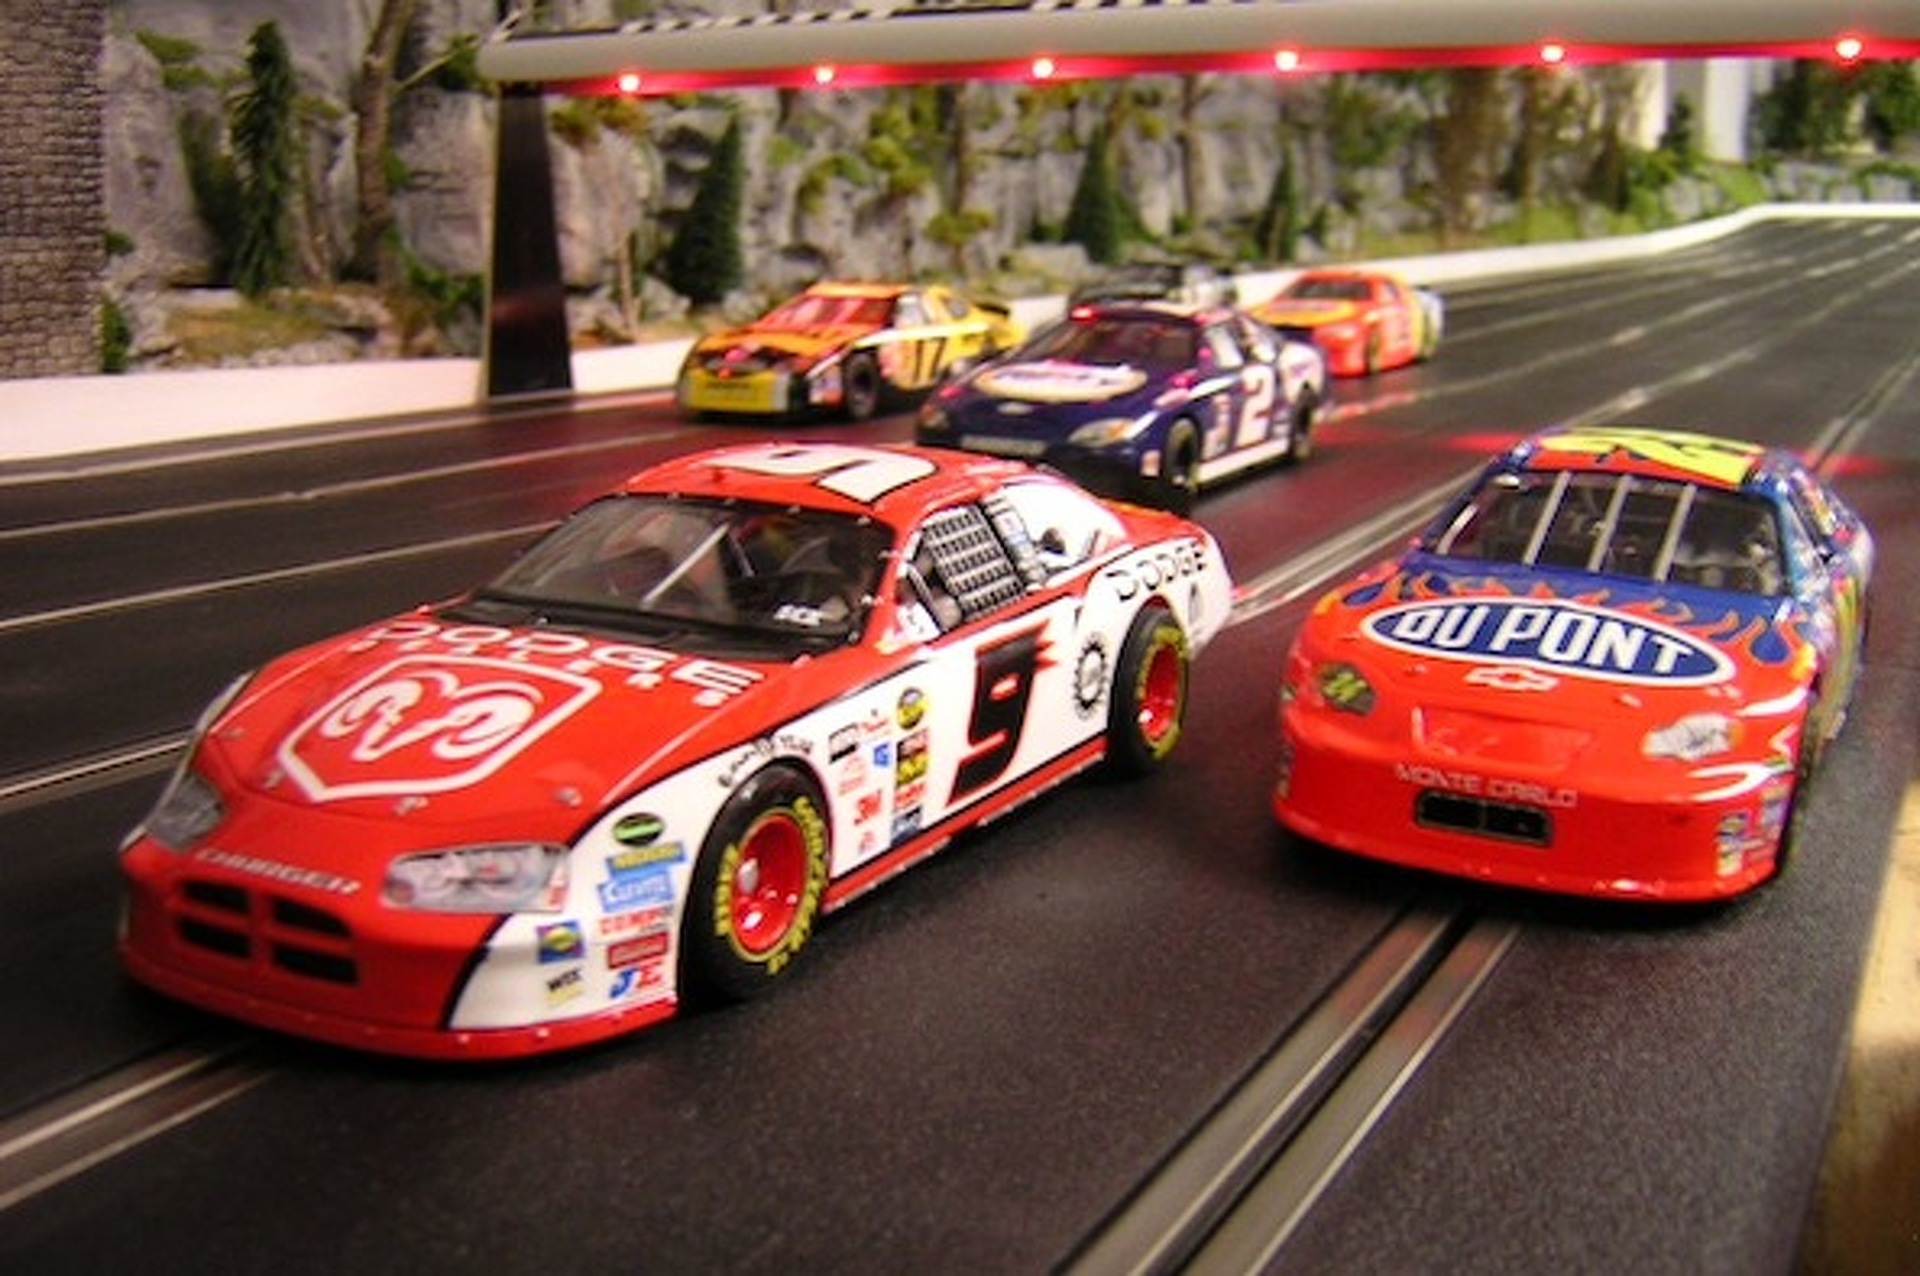 Slot Car Racing: The Ultimate Christmas Gift